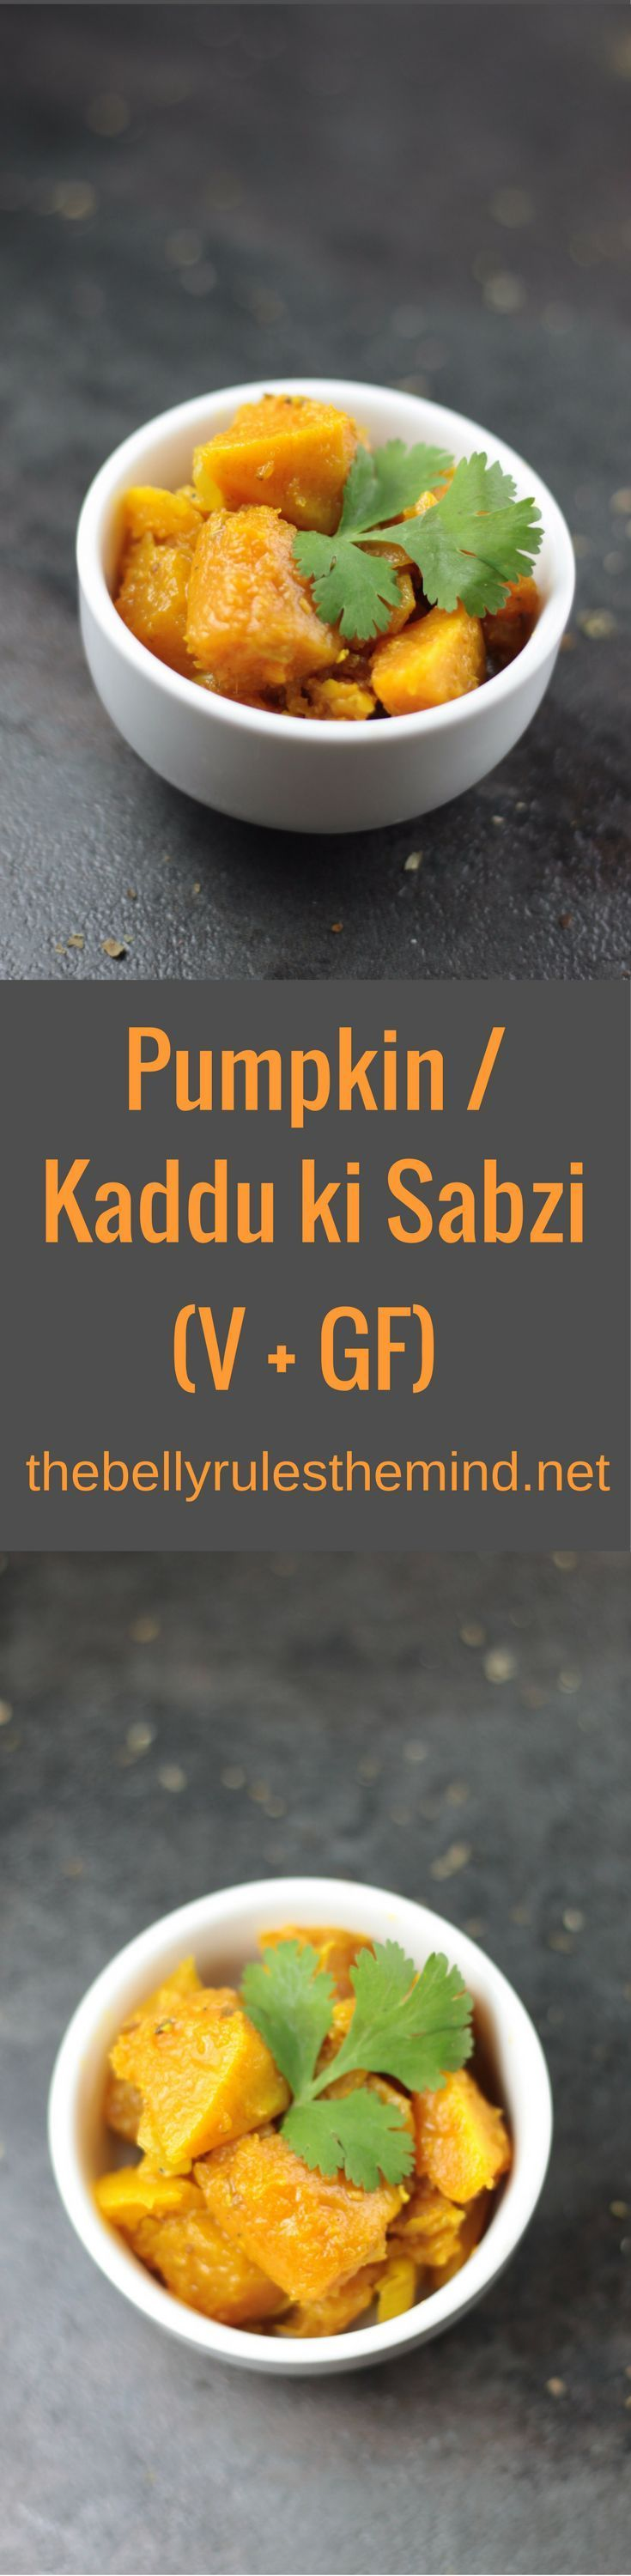 Indian style Pumpkin / Kaddu recipe bursting of sweet & tangy flavors. Mildly hot and easy to prepare, this is sure to leave you lip…